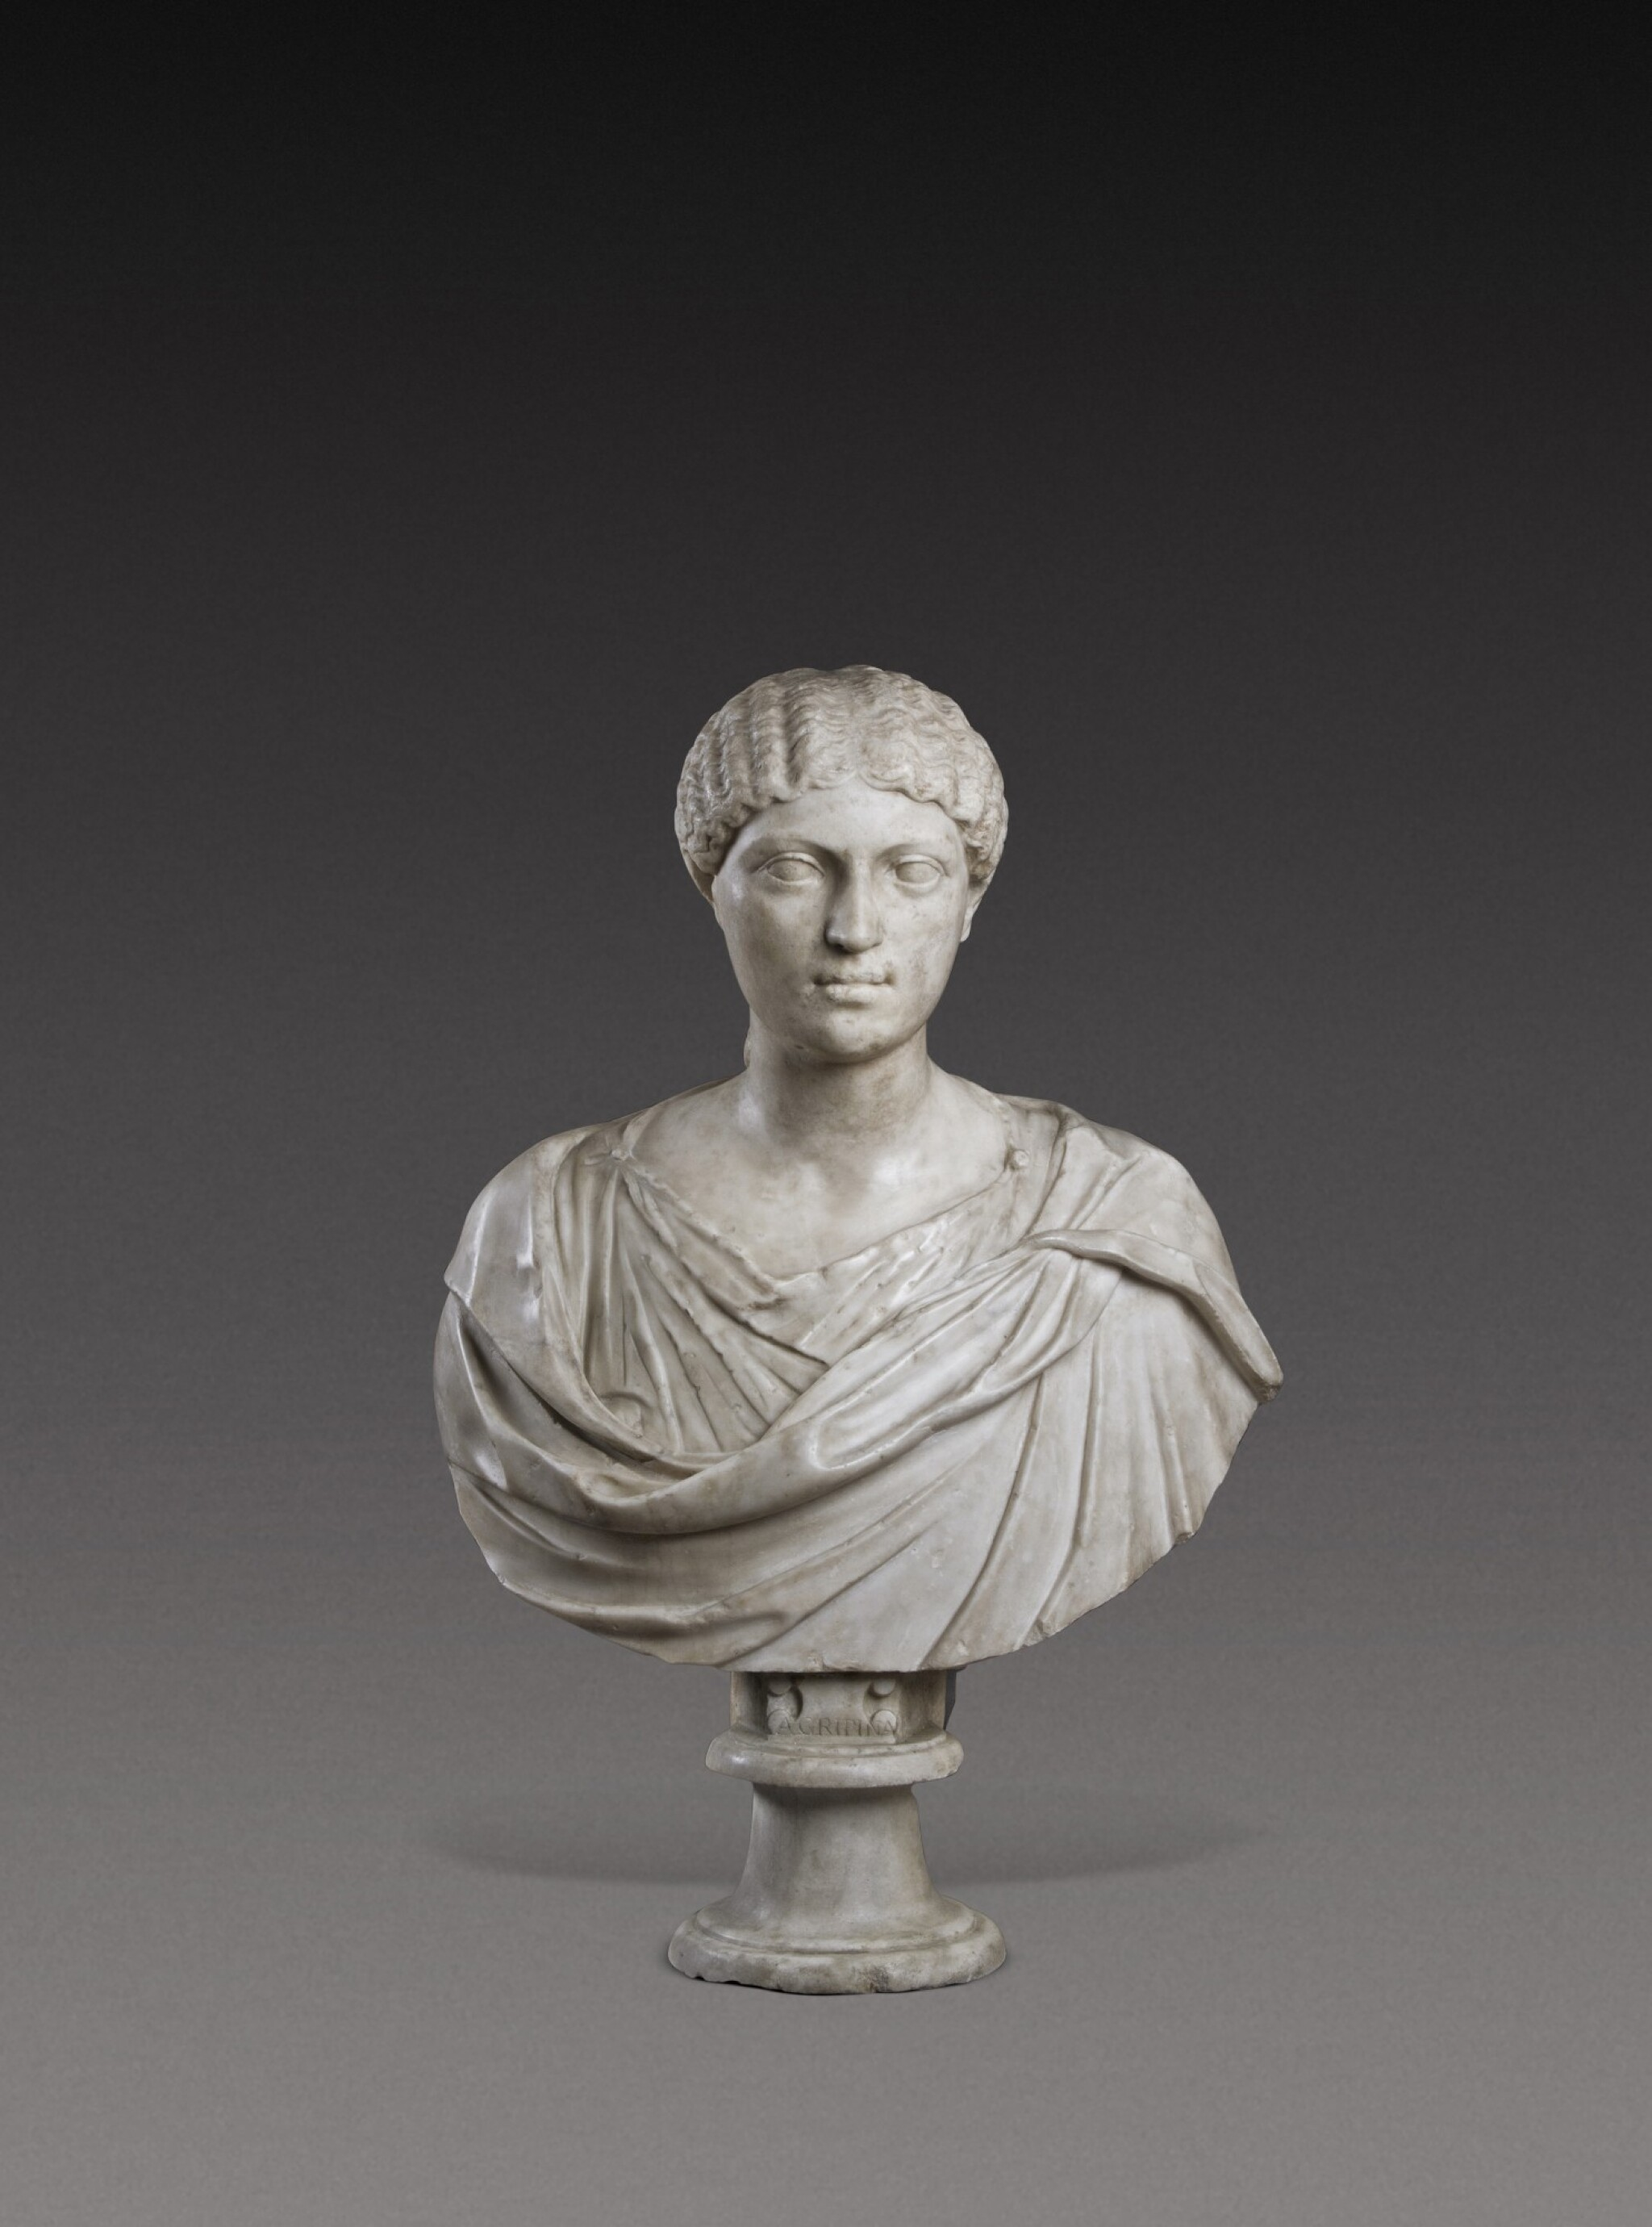 View 1 of Lot 72. A Roman Marble Portrait Bust of a Woman, Reign of Agrippina, circa A.D. 20-40.